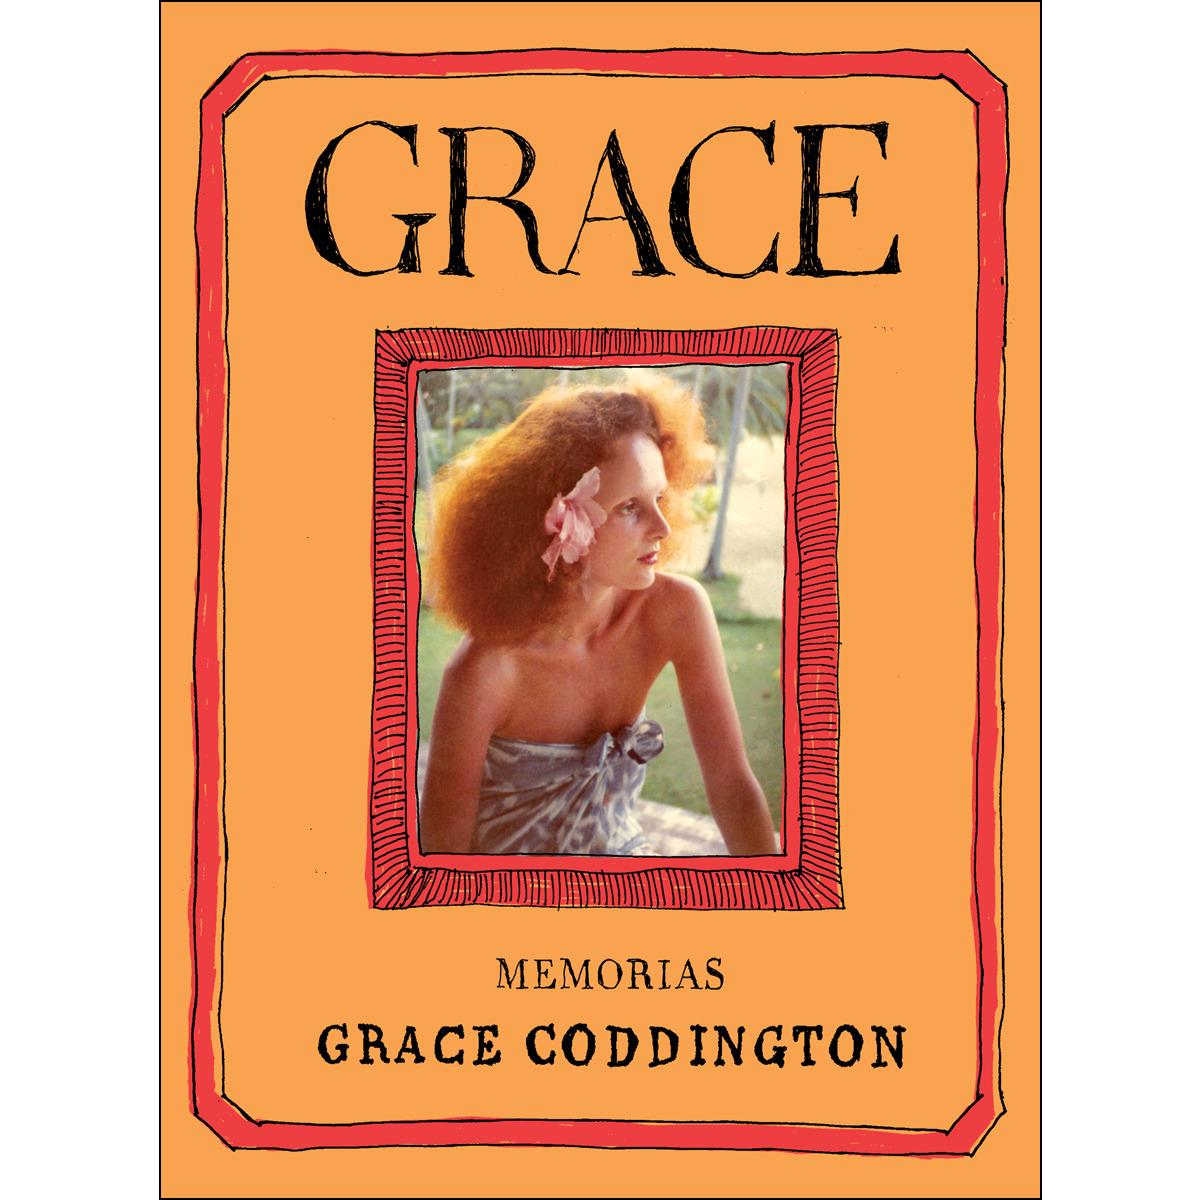 Grace: Memorias de Grace Coddington